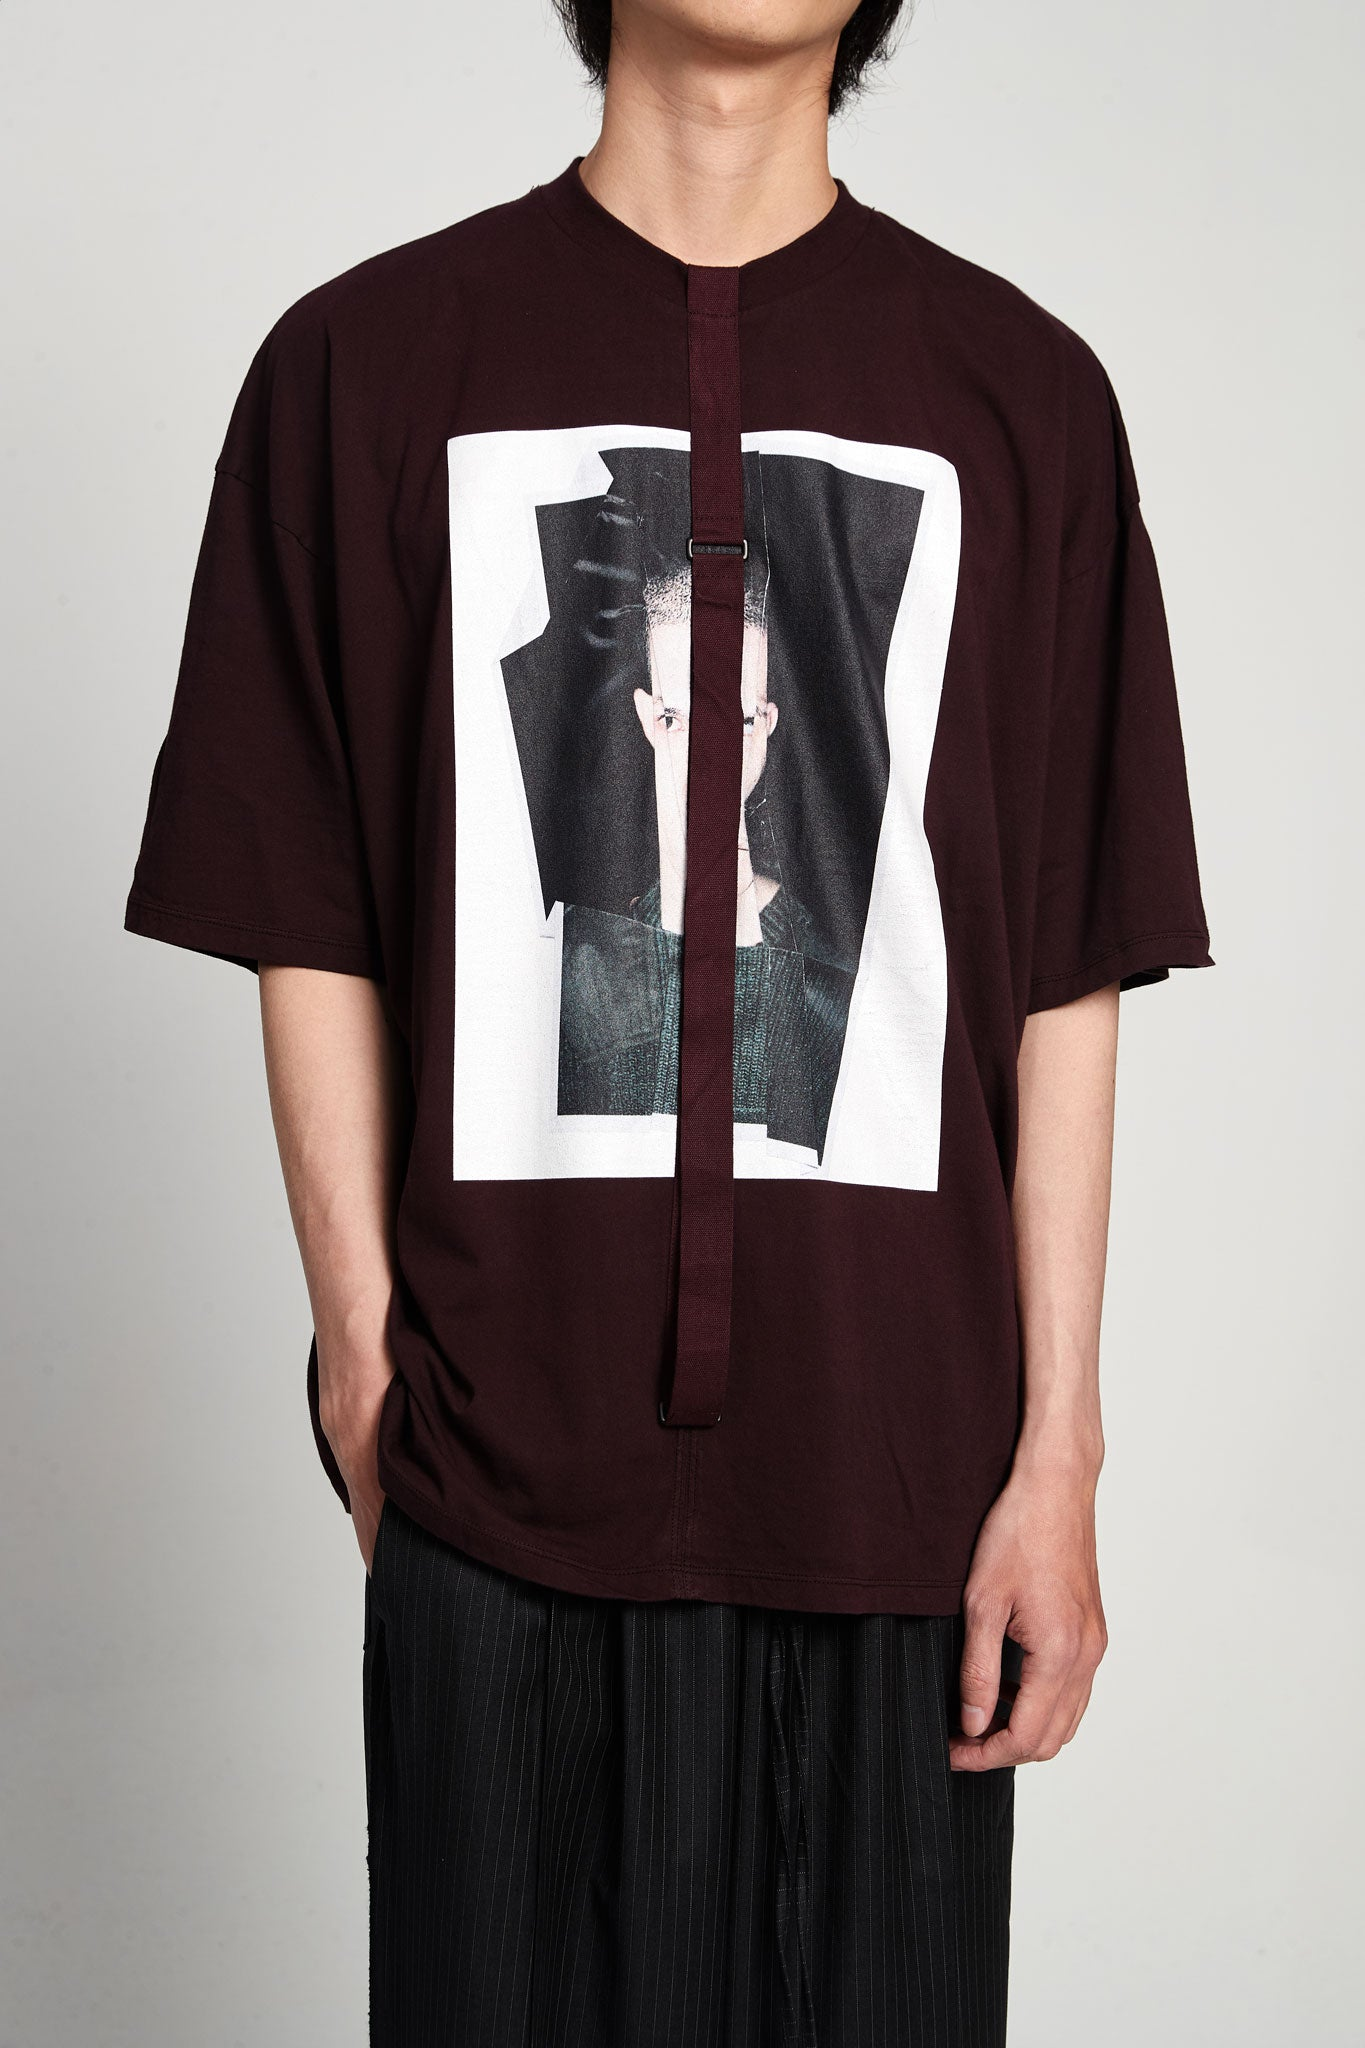 Relaxed Fit Jersey T-shirt Crash Cherry B.